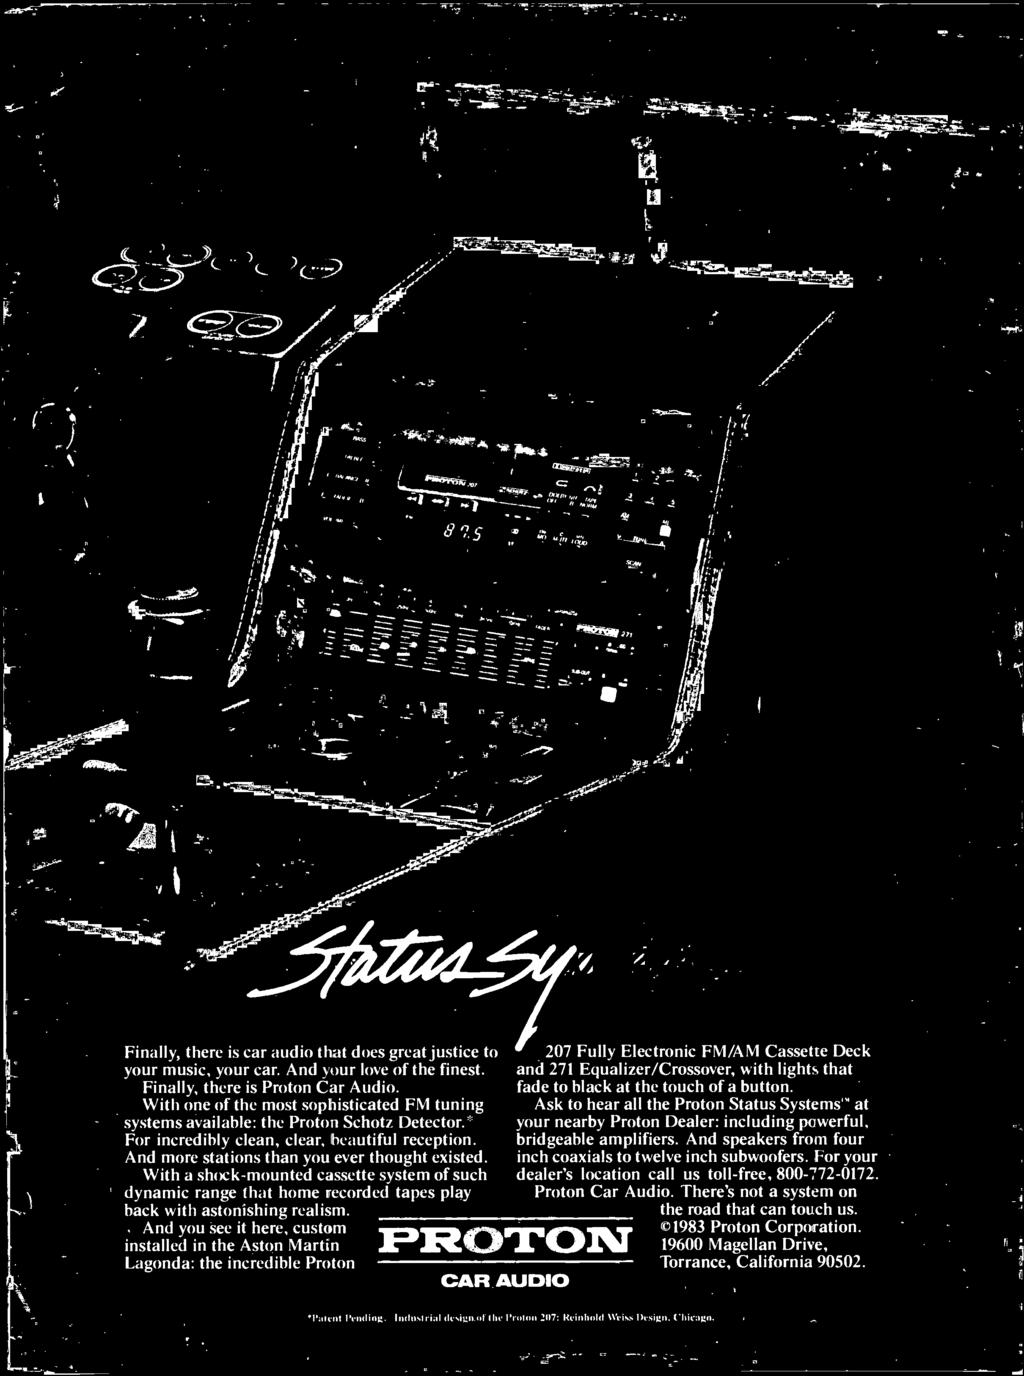 October 1983 Pdf 210hz Subwoofer Processing Circuit Low Pass Filter Board Kit At The Touch Of A Button Sk To Hear All Roton Status Systems